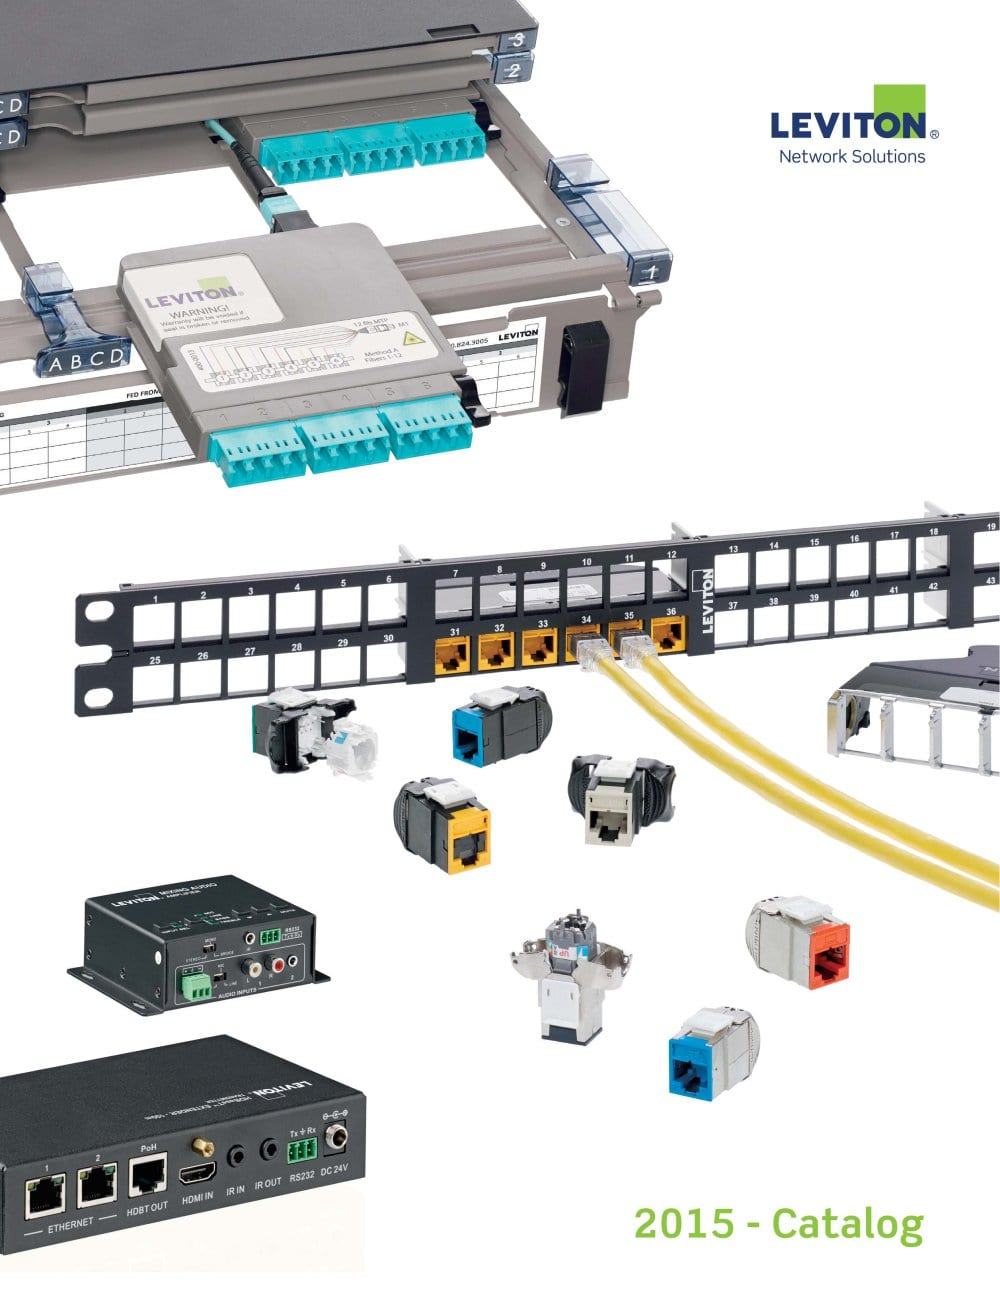 Catalog - Network Solutions 2015 - LEVITON Lighting - PDF Catalogues ...